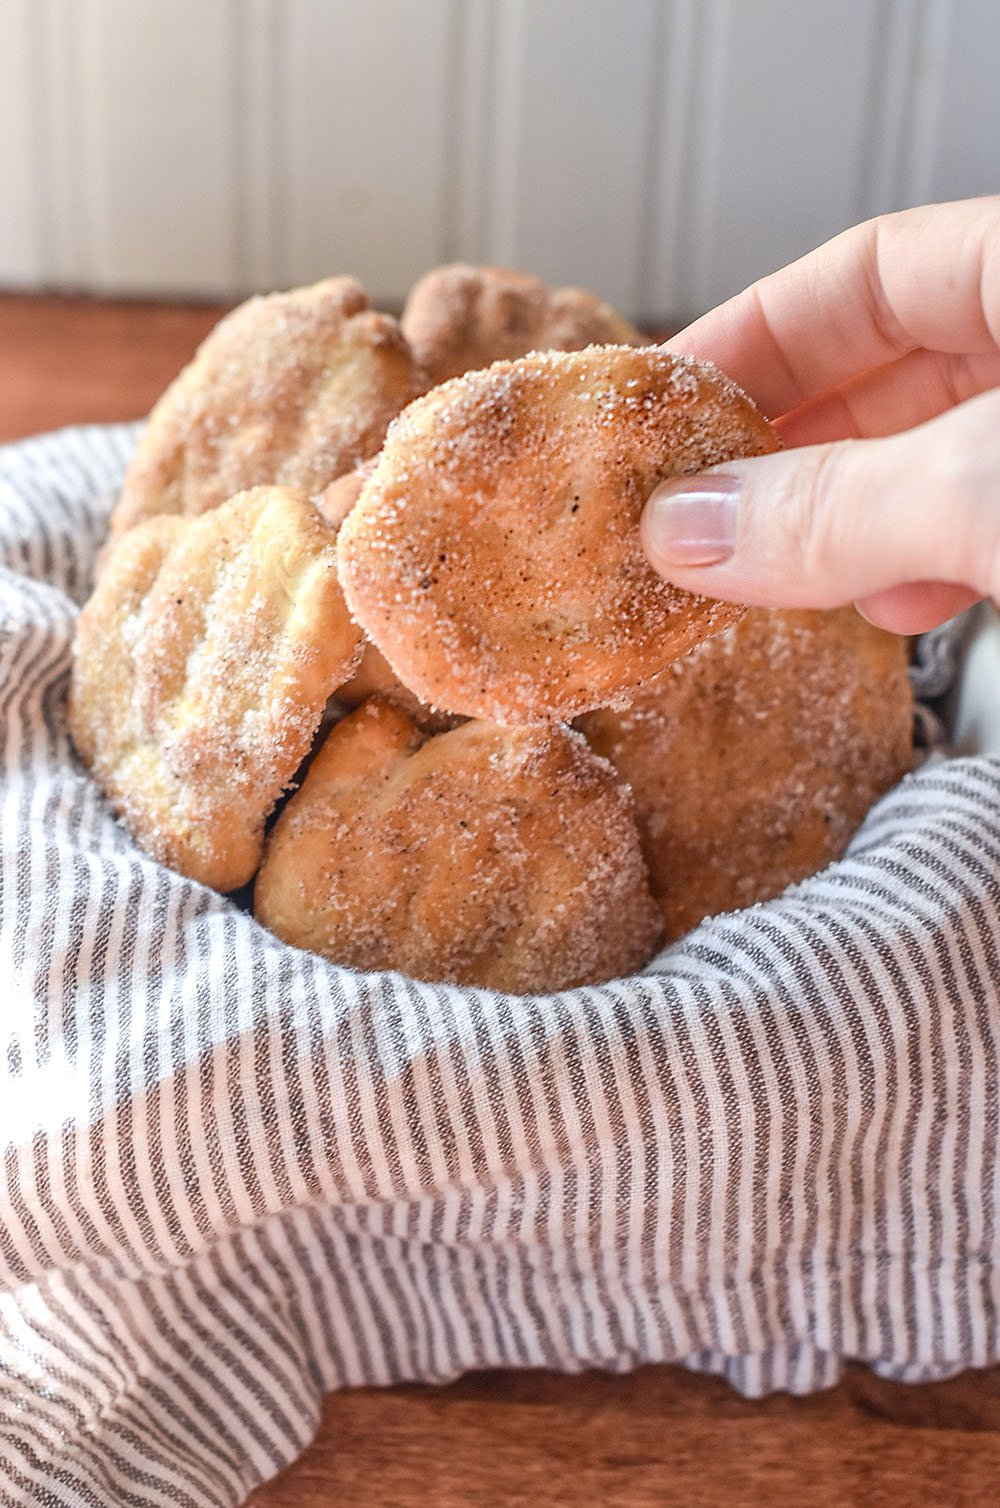 Bread dough fried in the air fryer and coated with cinnamon and sugar.